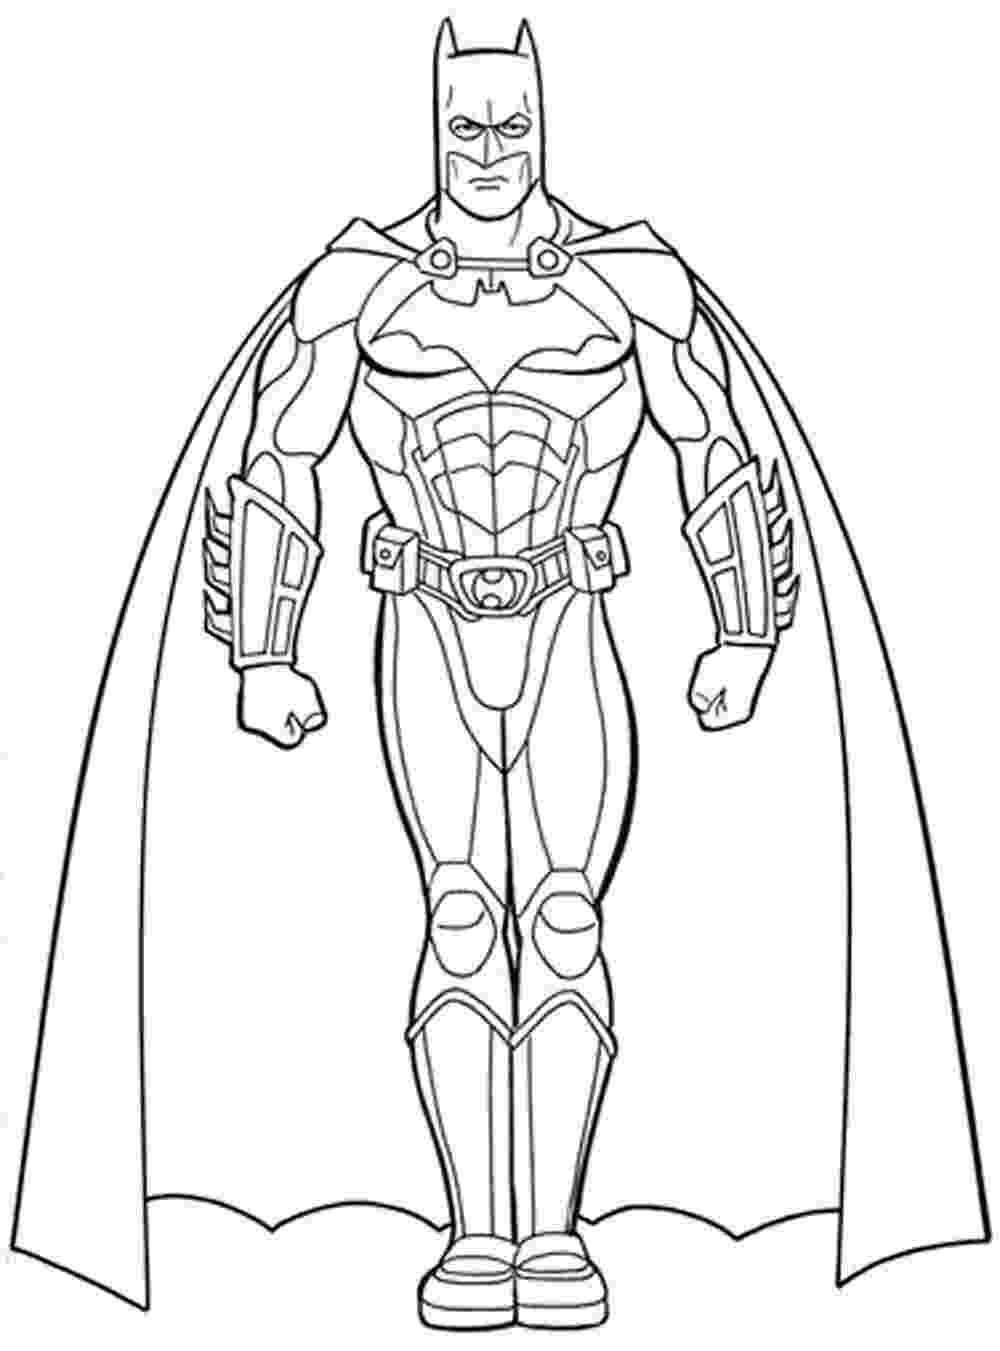 batman color pages batman and robin coloring pages to download and print for free color pages batman